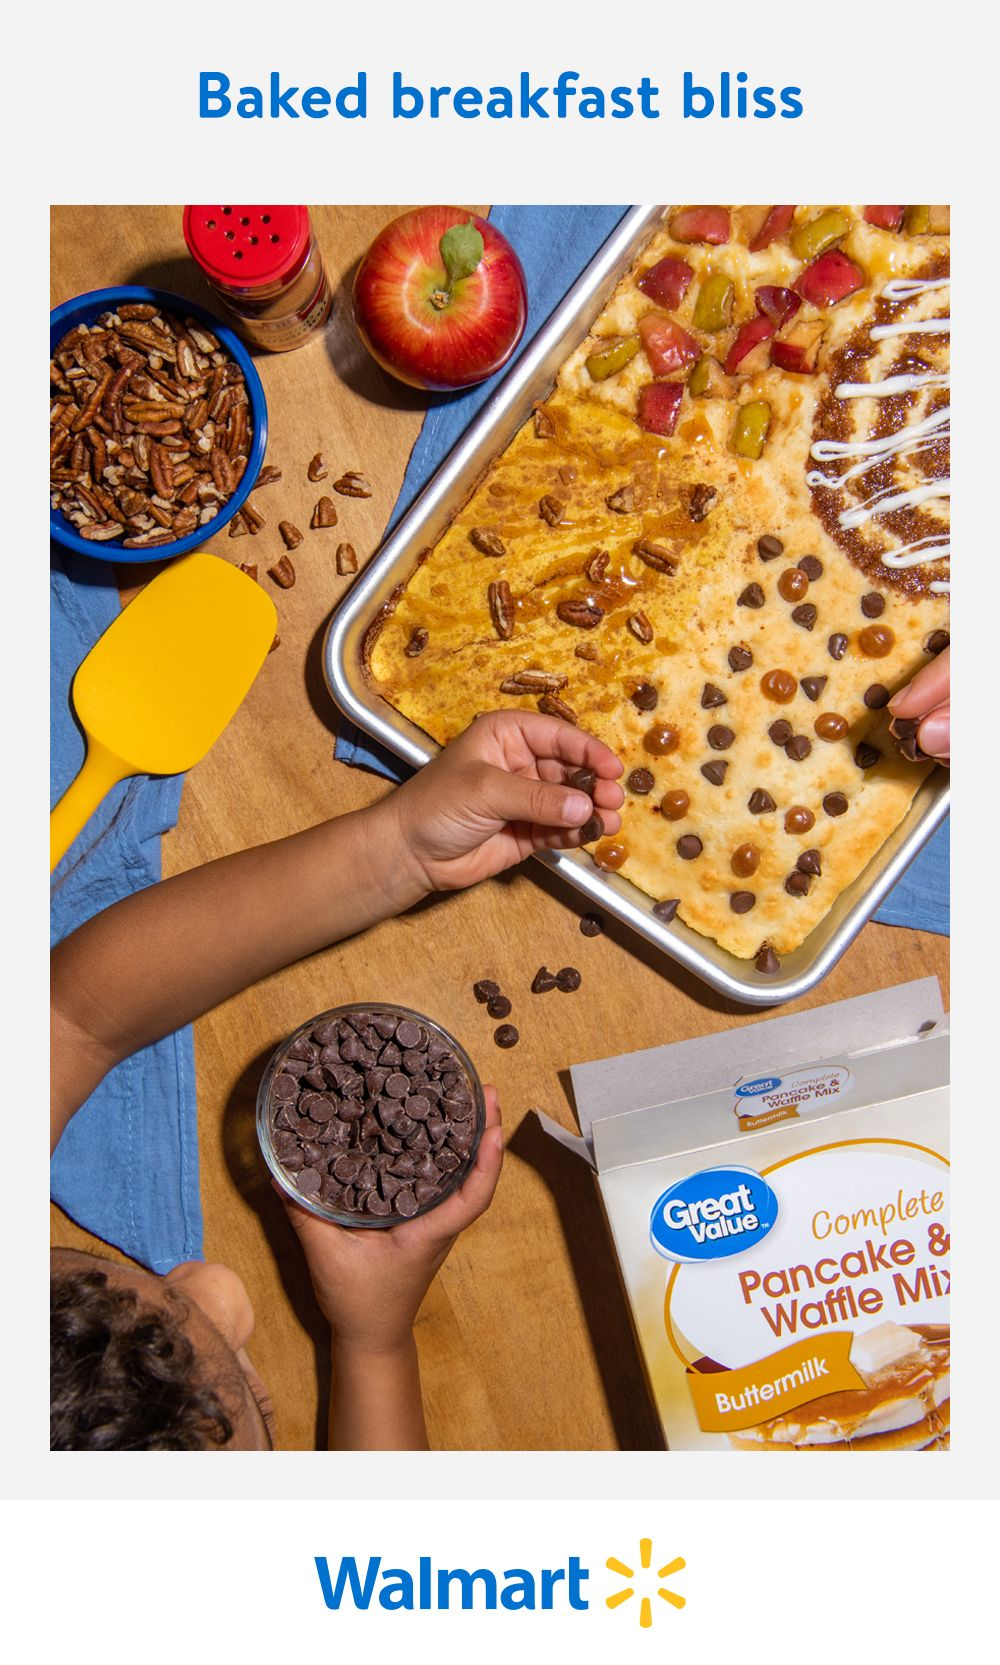 Sprinkle and swirl delicious fall flavors for an easy, sweet or savory breakfast treat. Shop Walmart for everyday low prices on fruits, nuts, spices, and more for your seasonal baking needs.